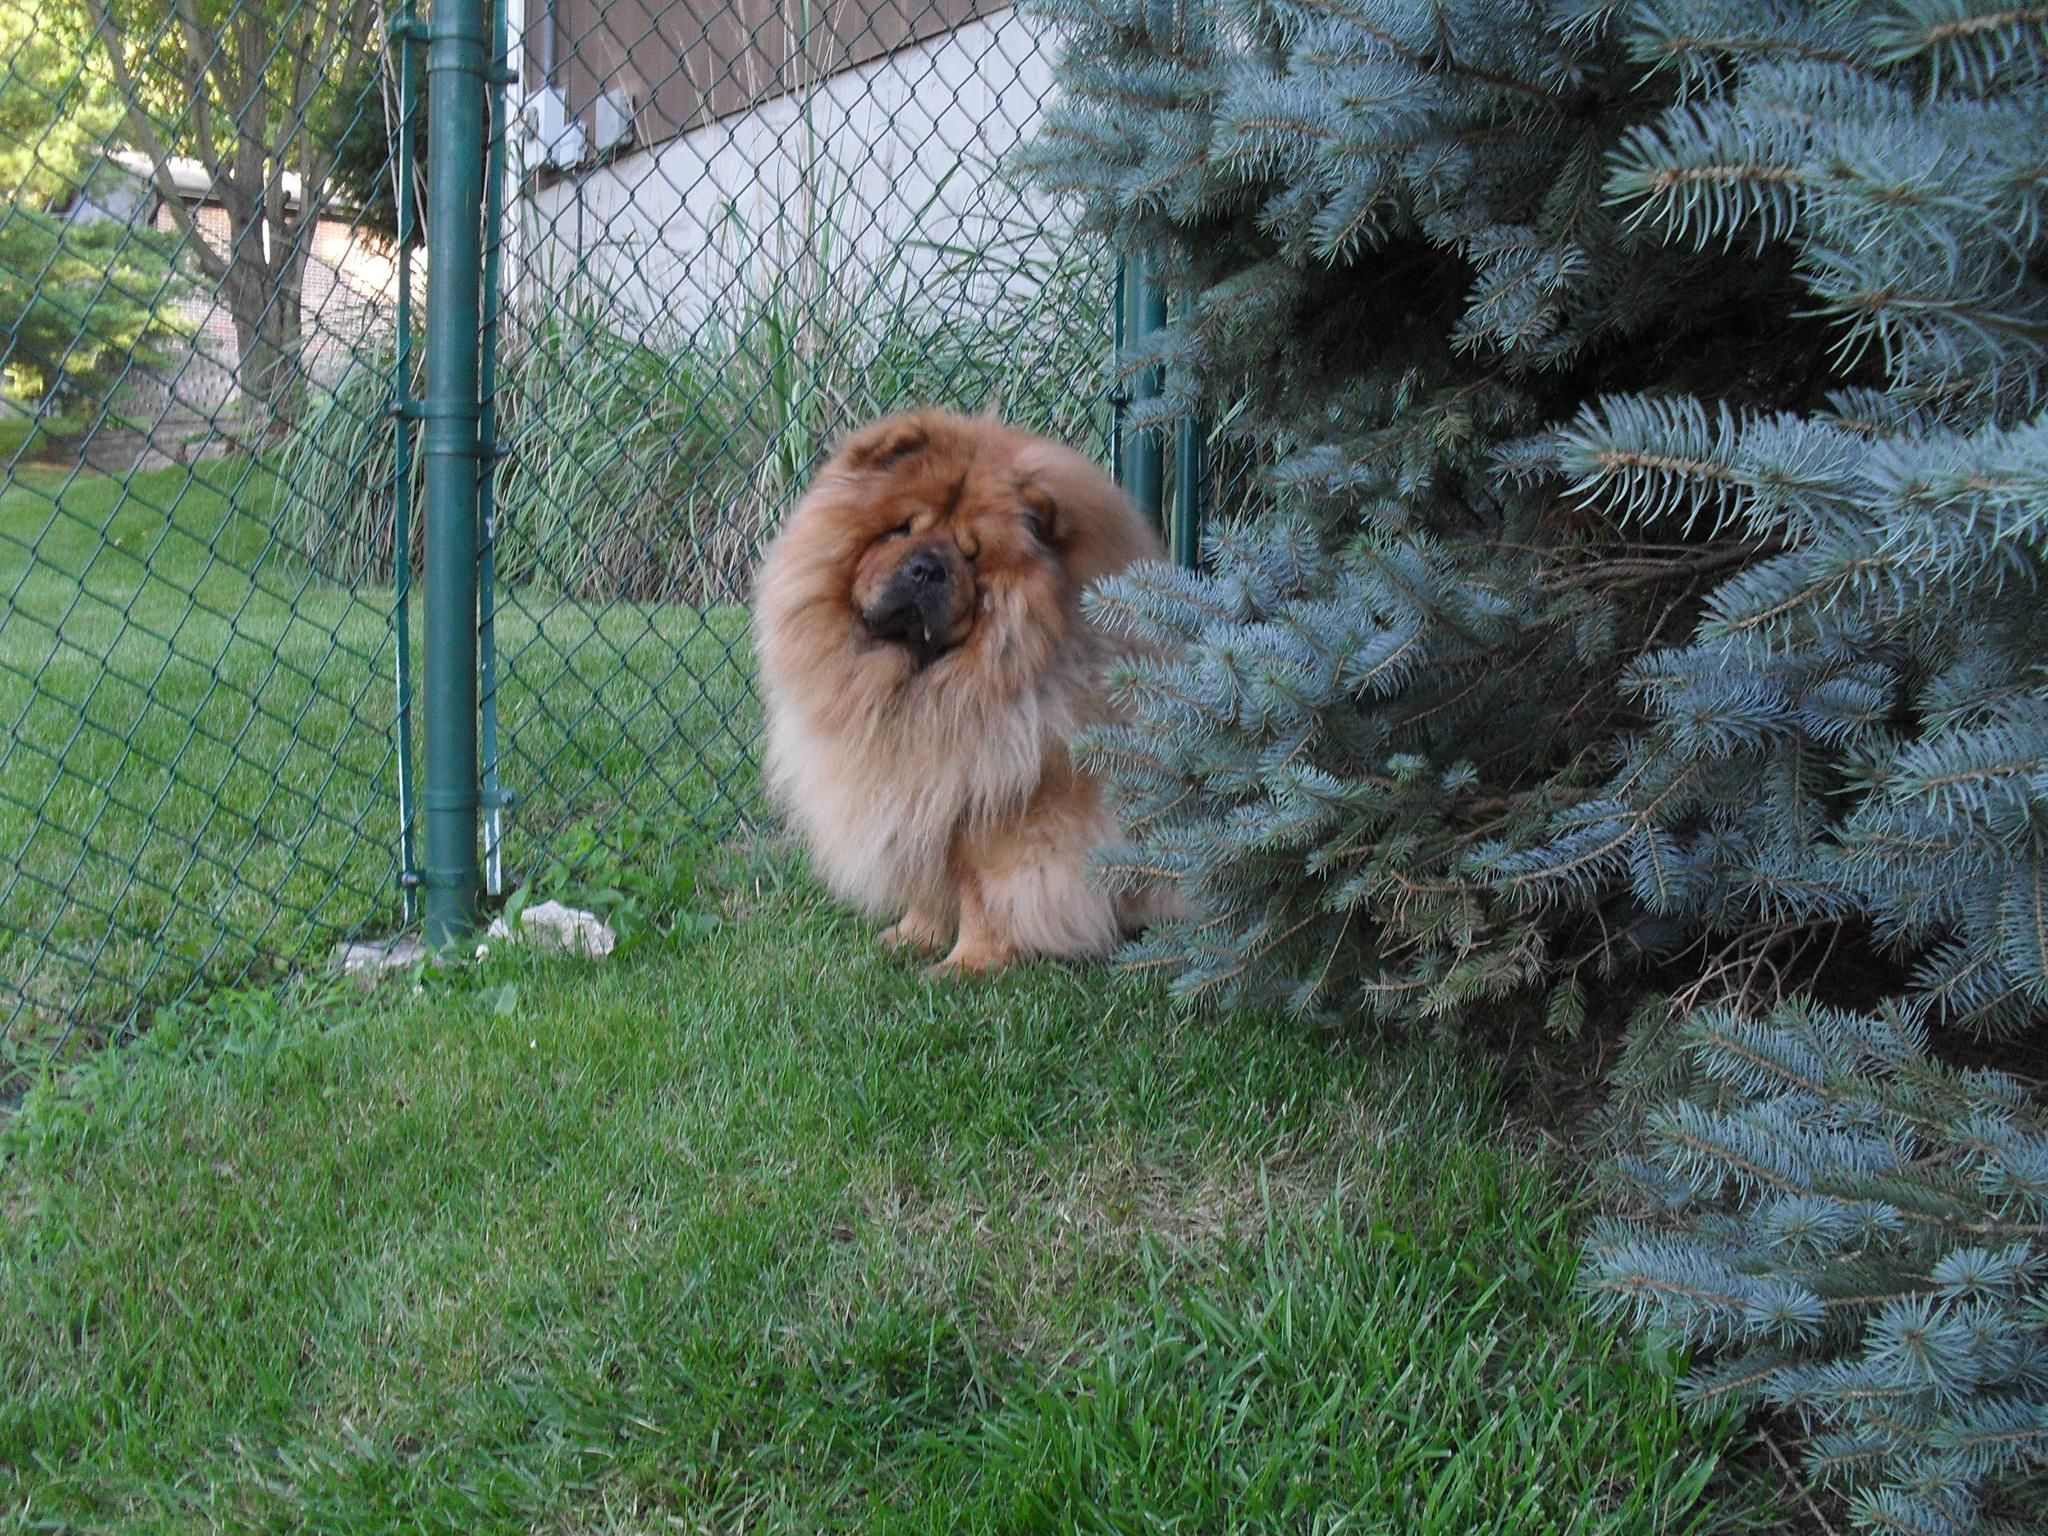 nature Chow chow dogs